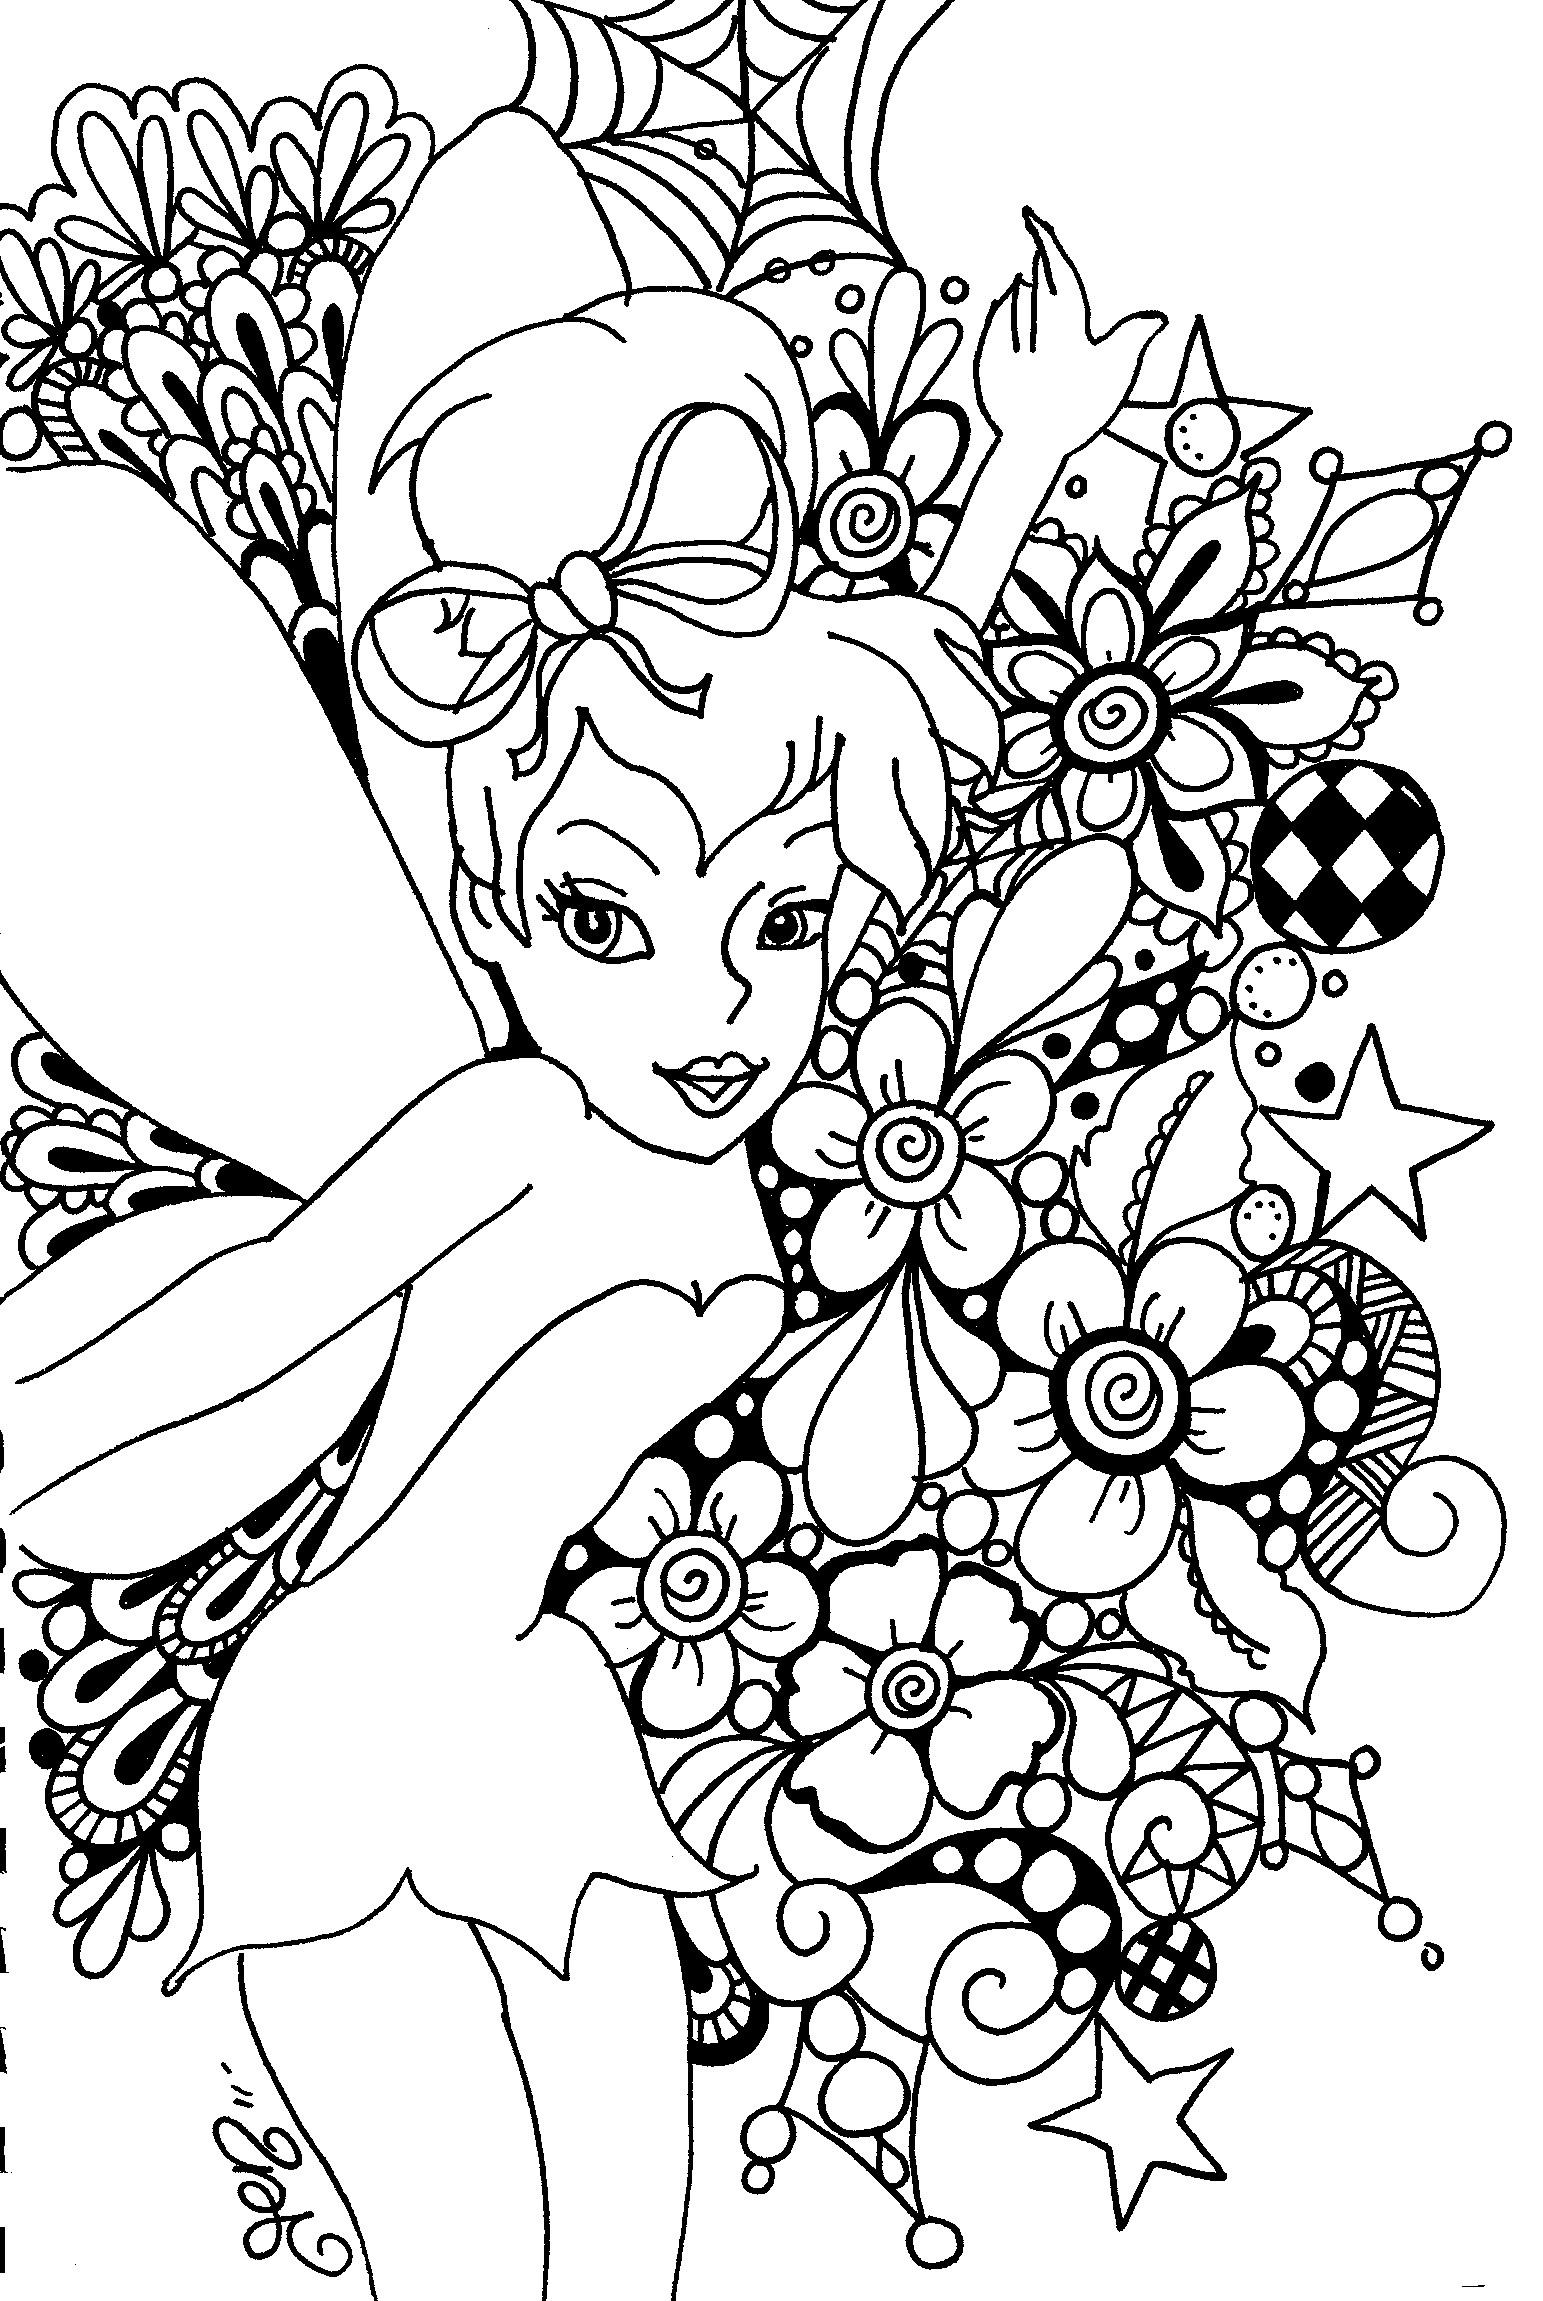 1543x2301 Coloring Pages For Adults Online Free Printable Tinkerbell Kids